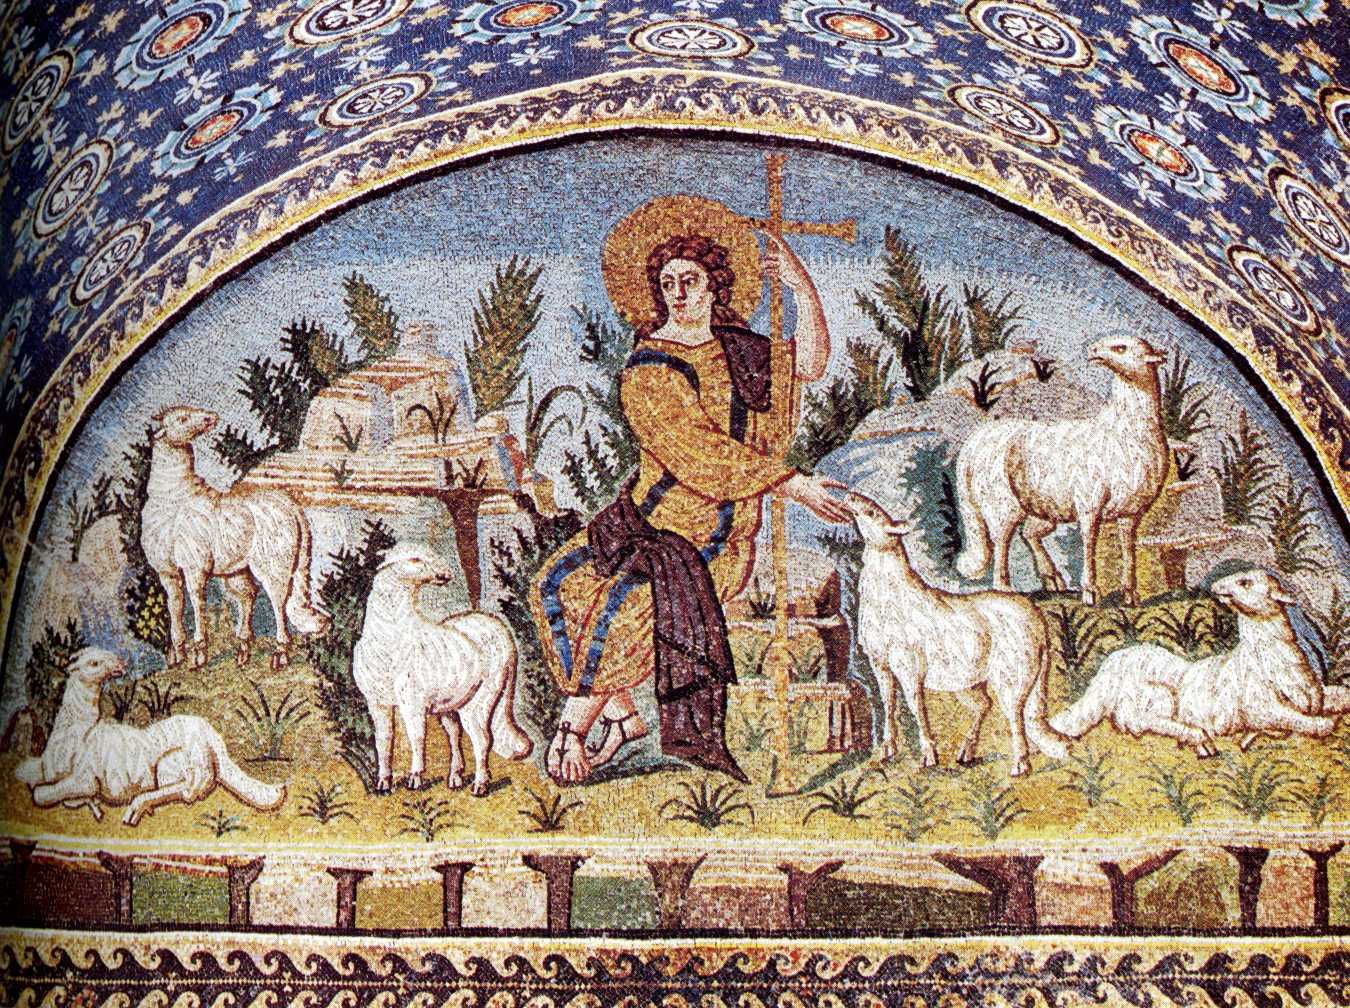 Jesus as the Good Shepherd mosaic, Galla Placidia Mausoleum, Ravenna, Italy